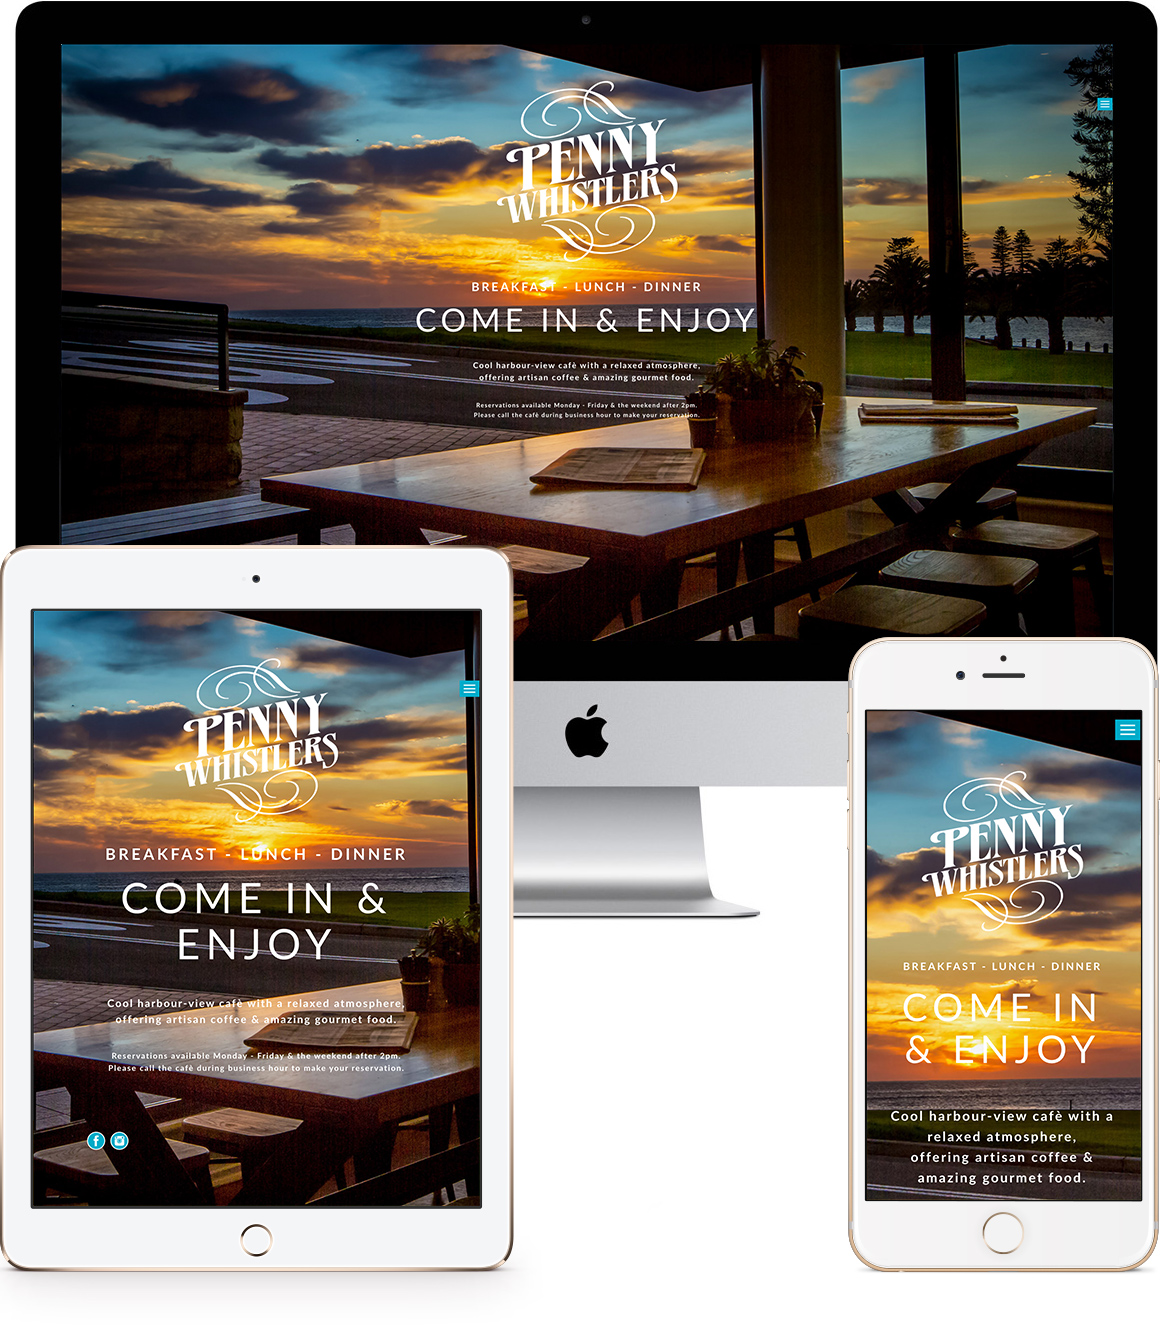 Penny Whistlers Café responsive website design